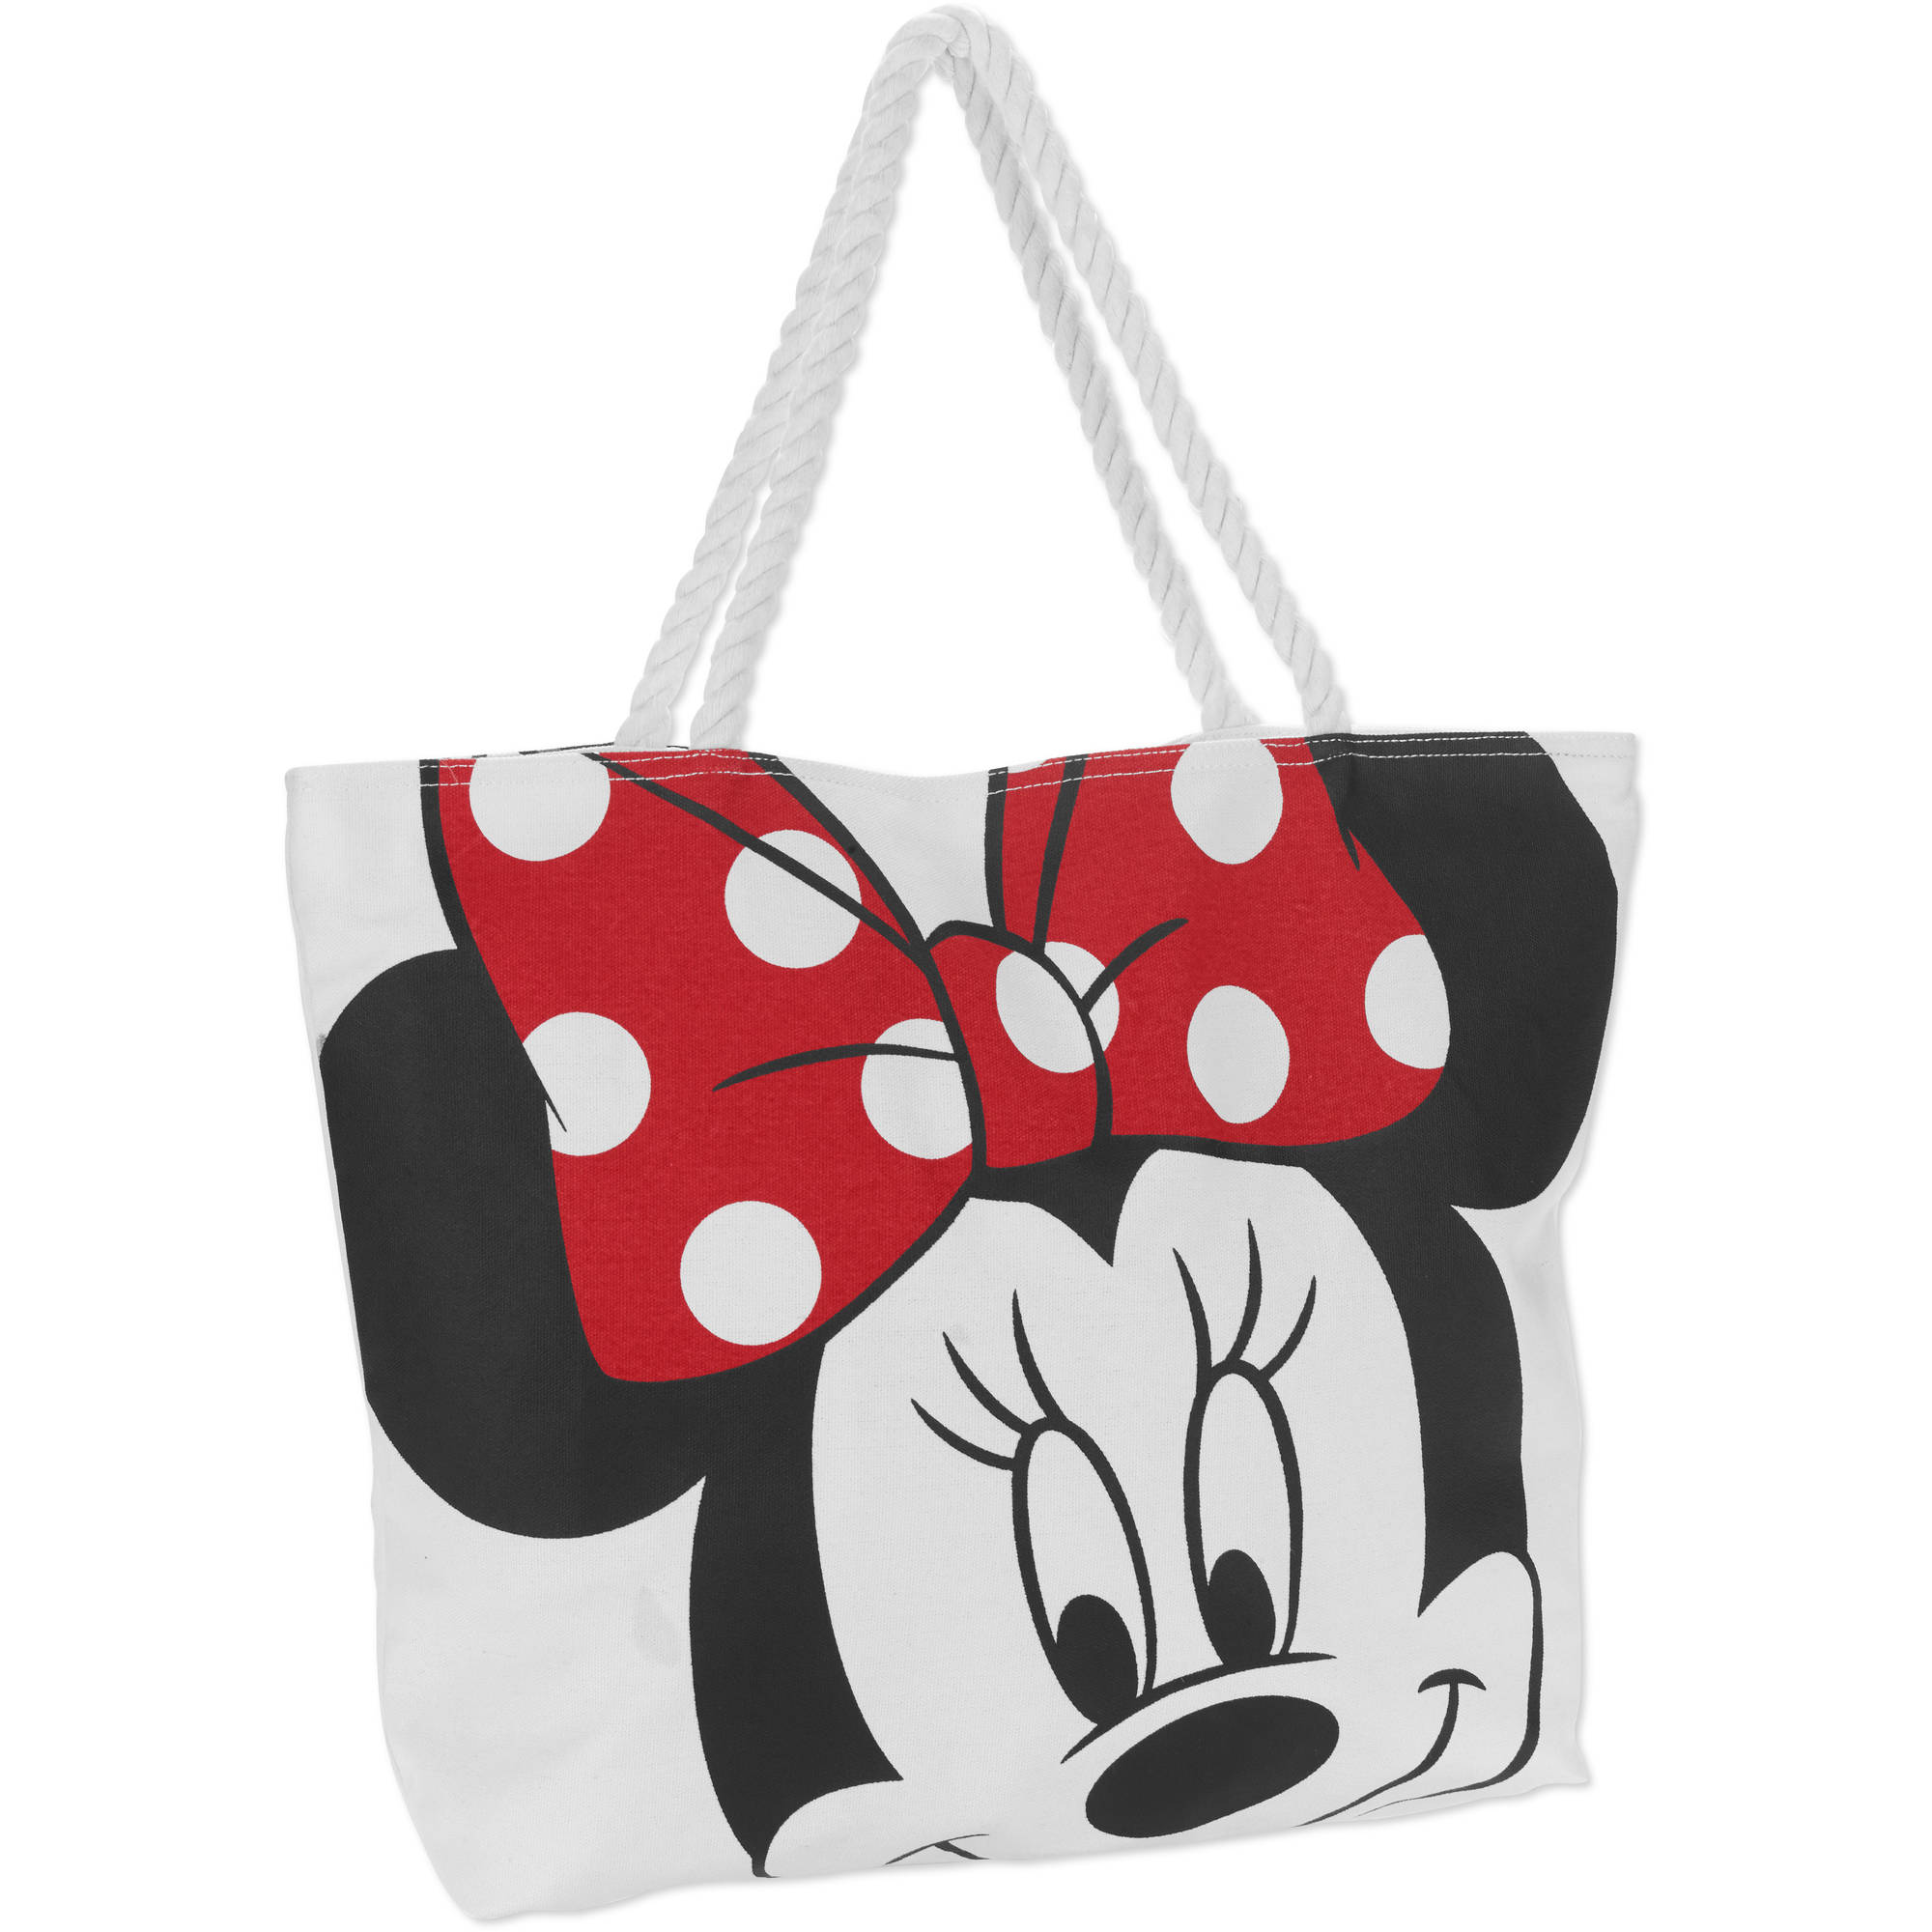 "Disney Minnie Mouse 13"" Canvas Tote"